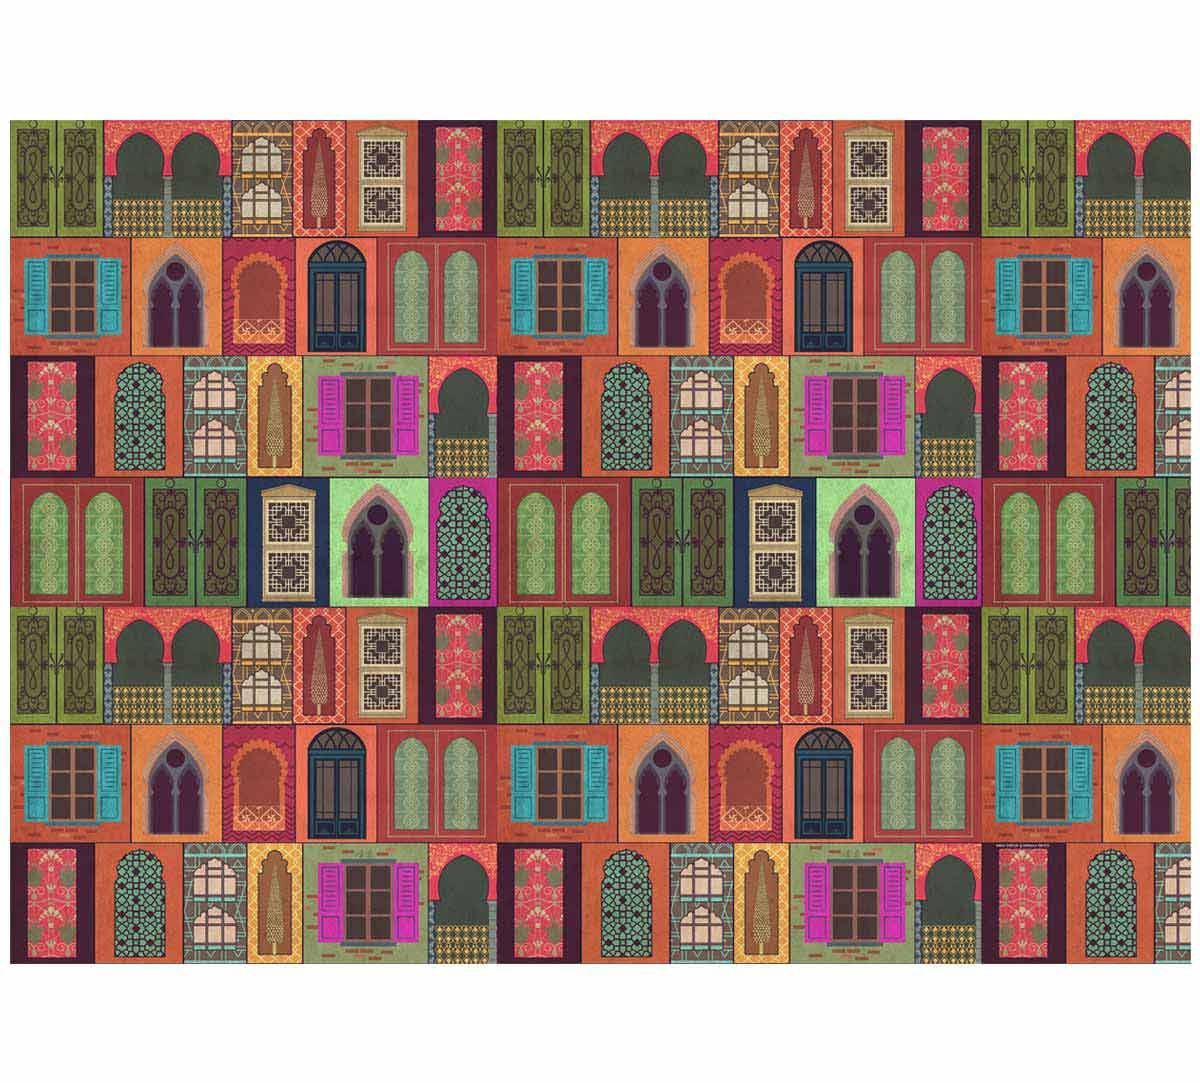 India Circus Mughal Doors Reiteration Gift Wrapping Paper